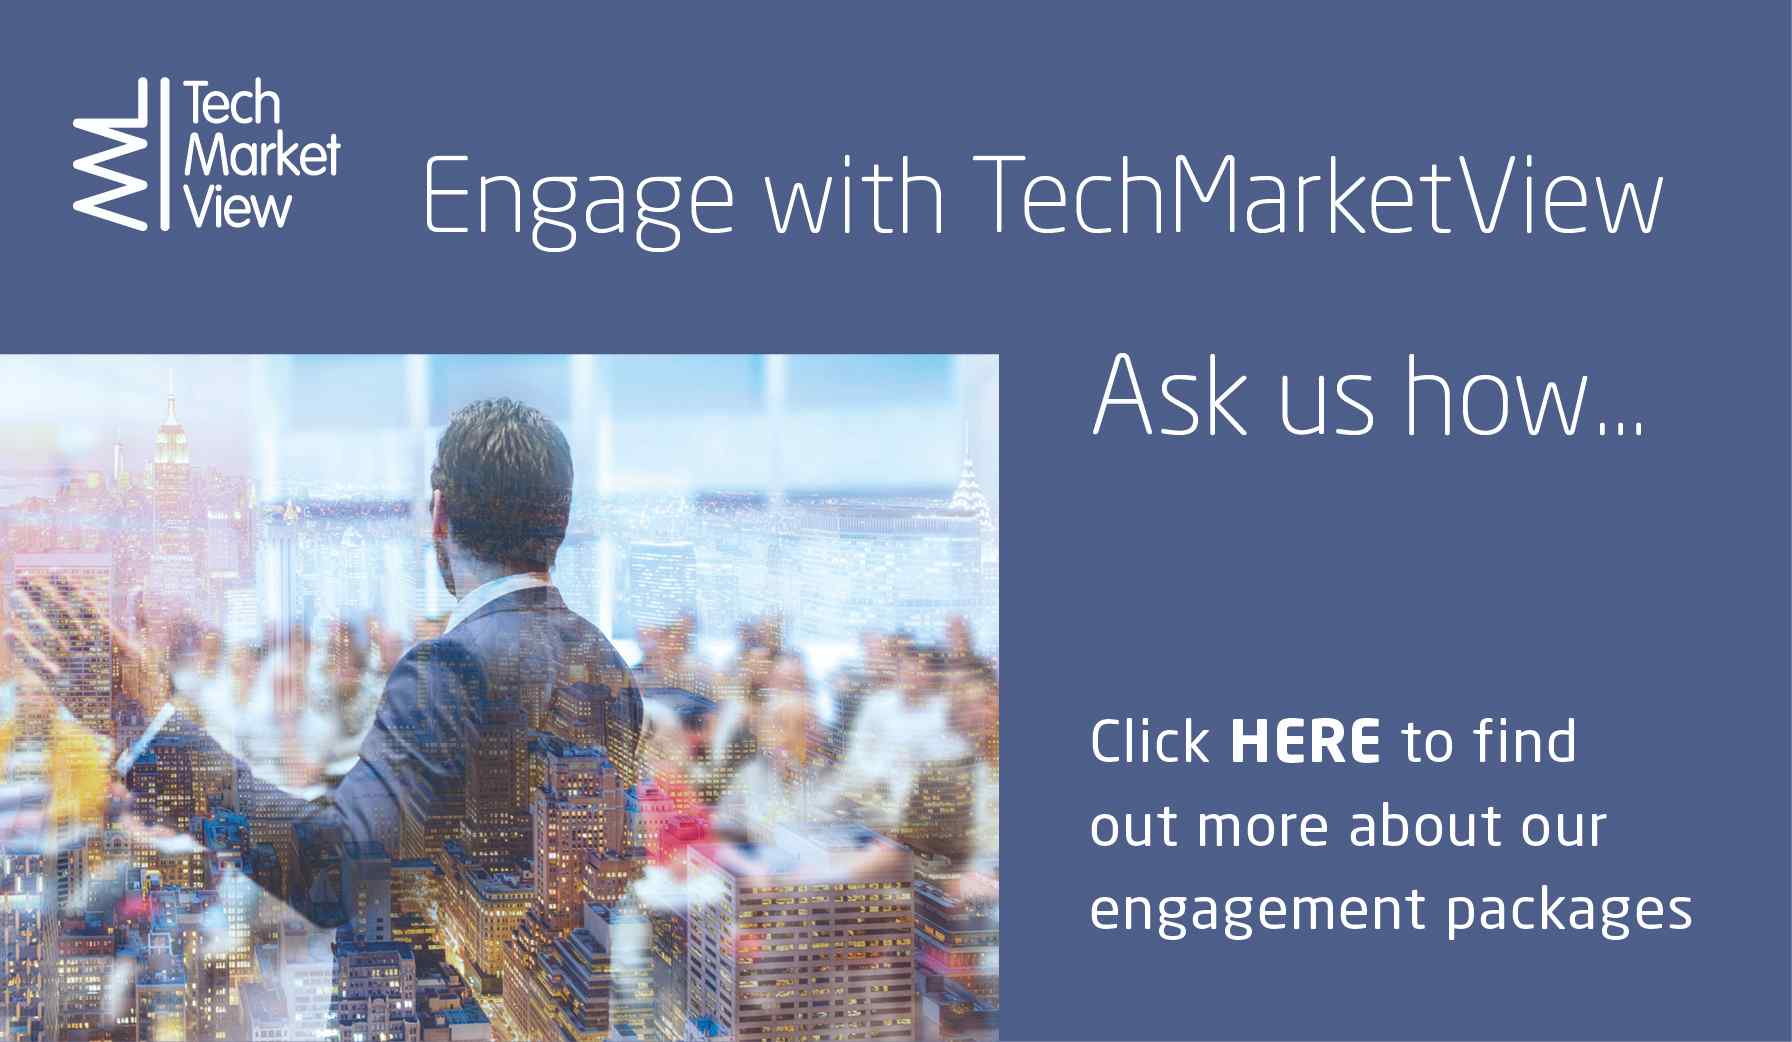 Engage with TechMarketView